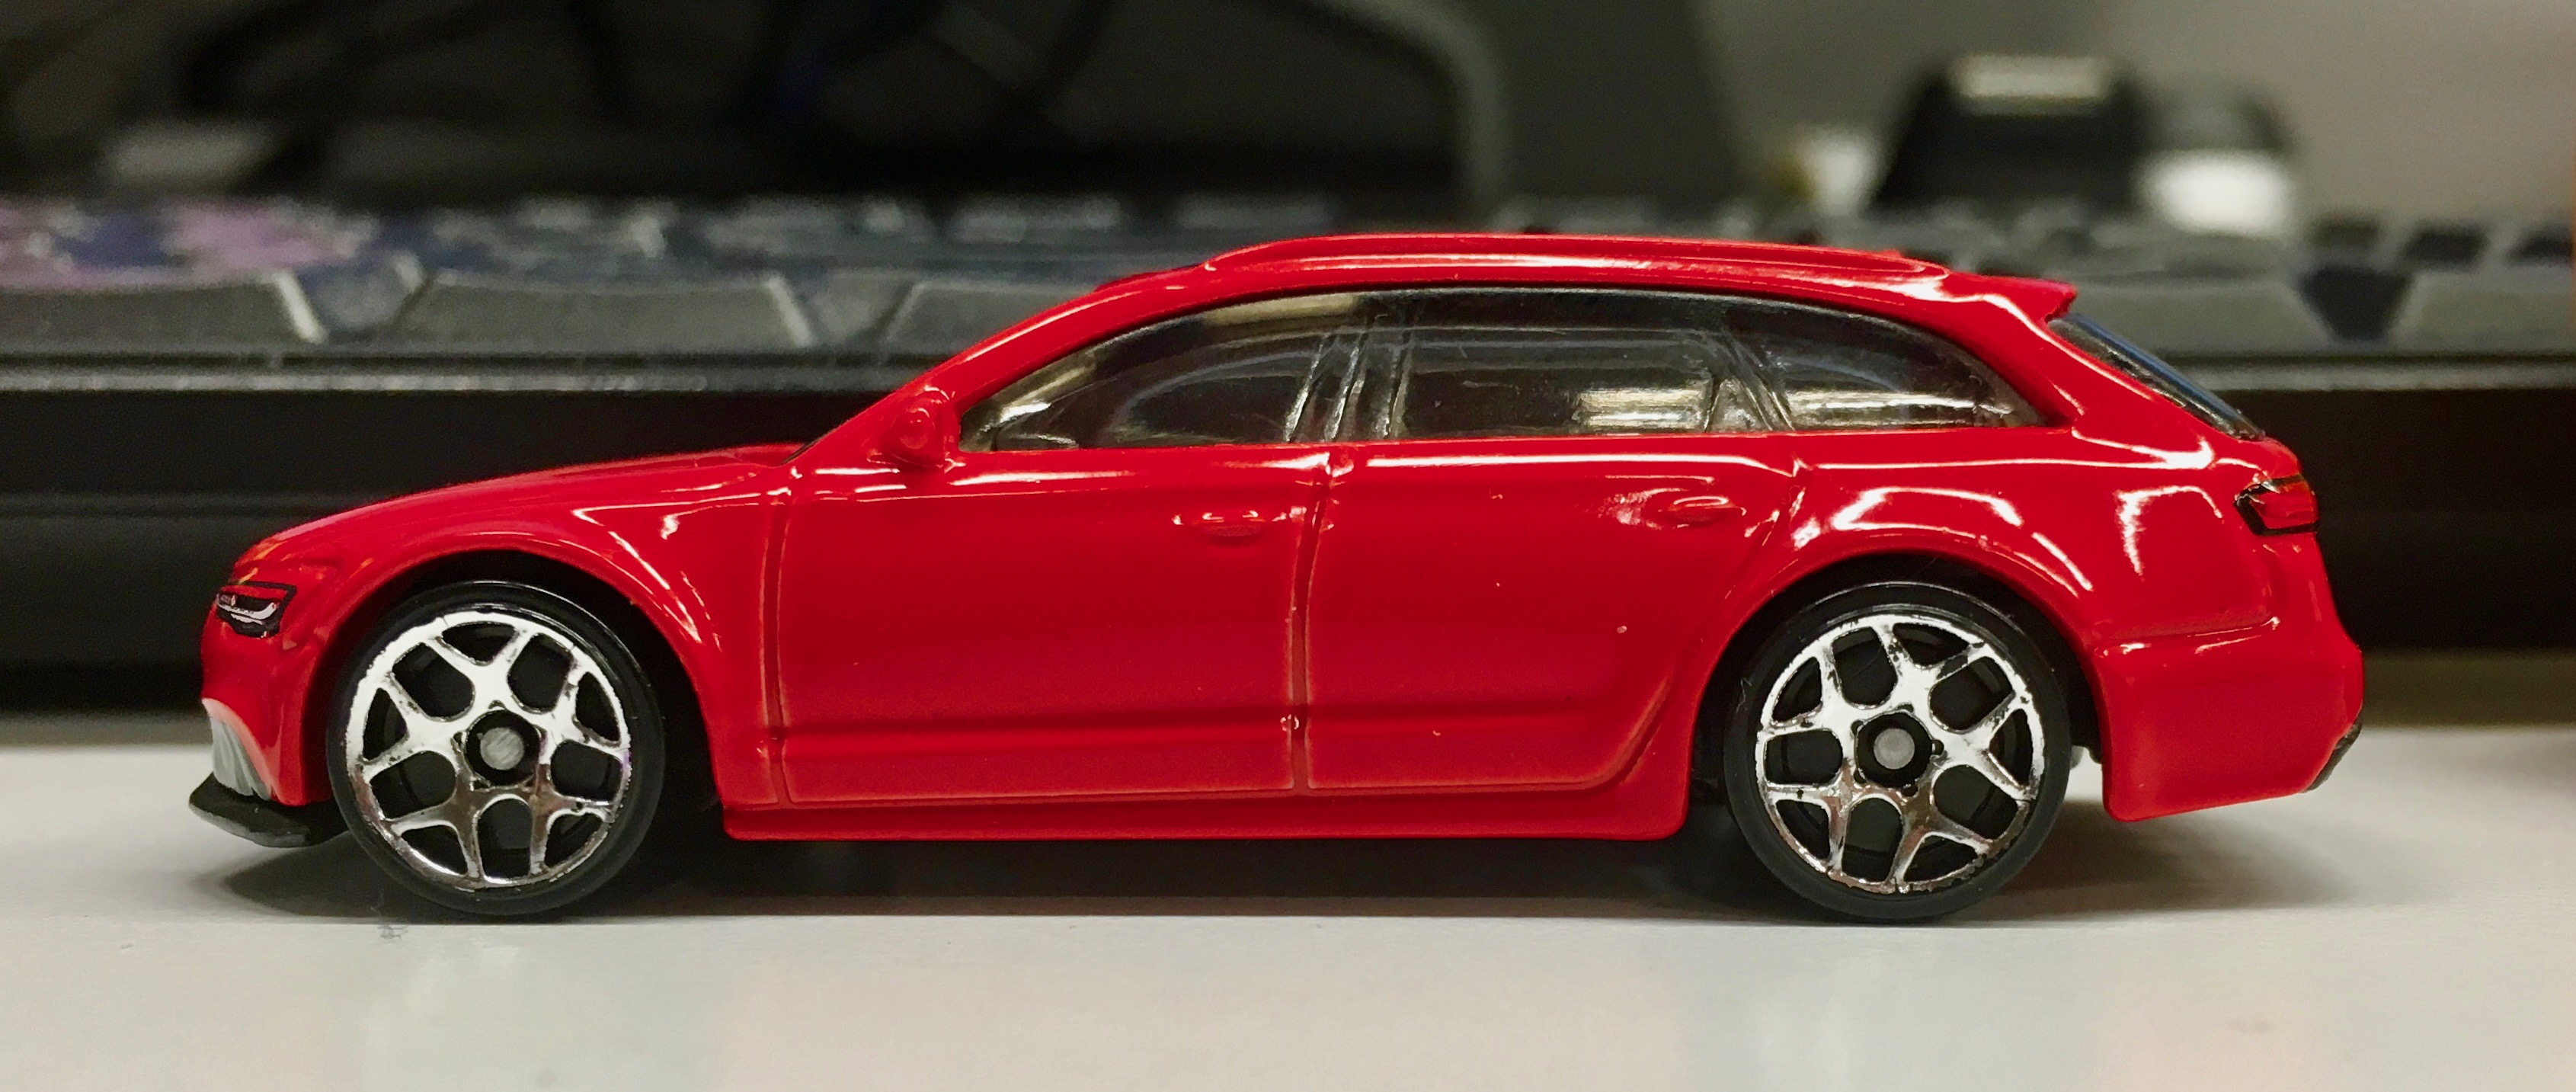 Here Is The Entire Hot Wheels Mainline List The Lamley Group - Audi models list